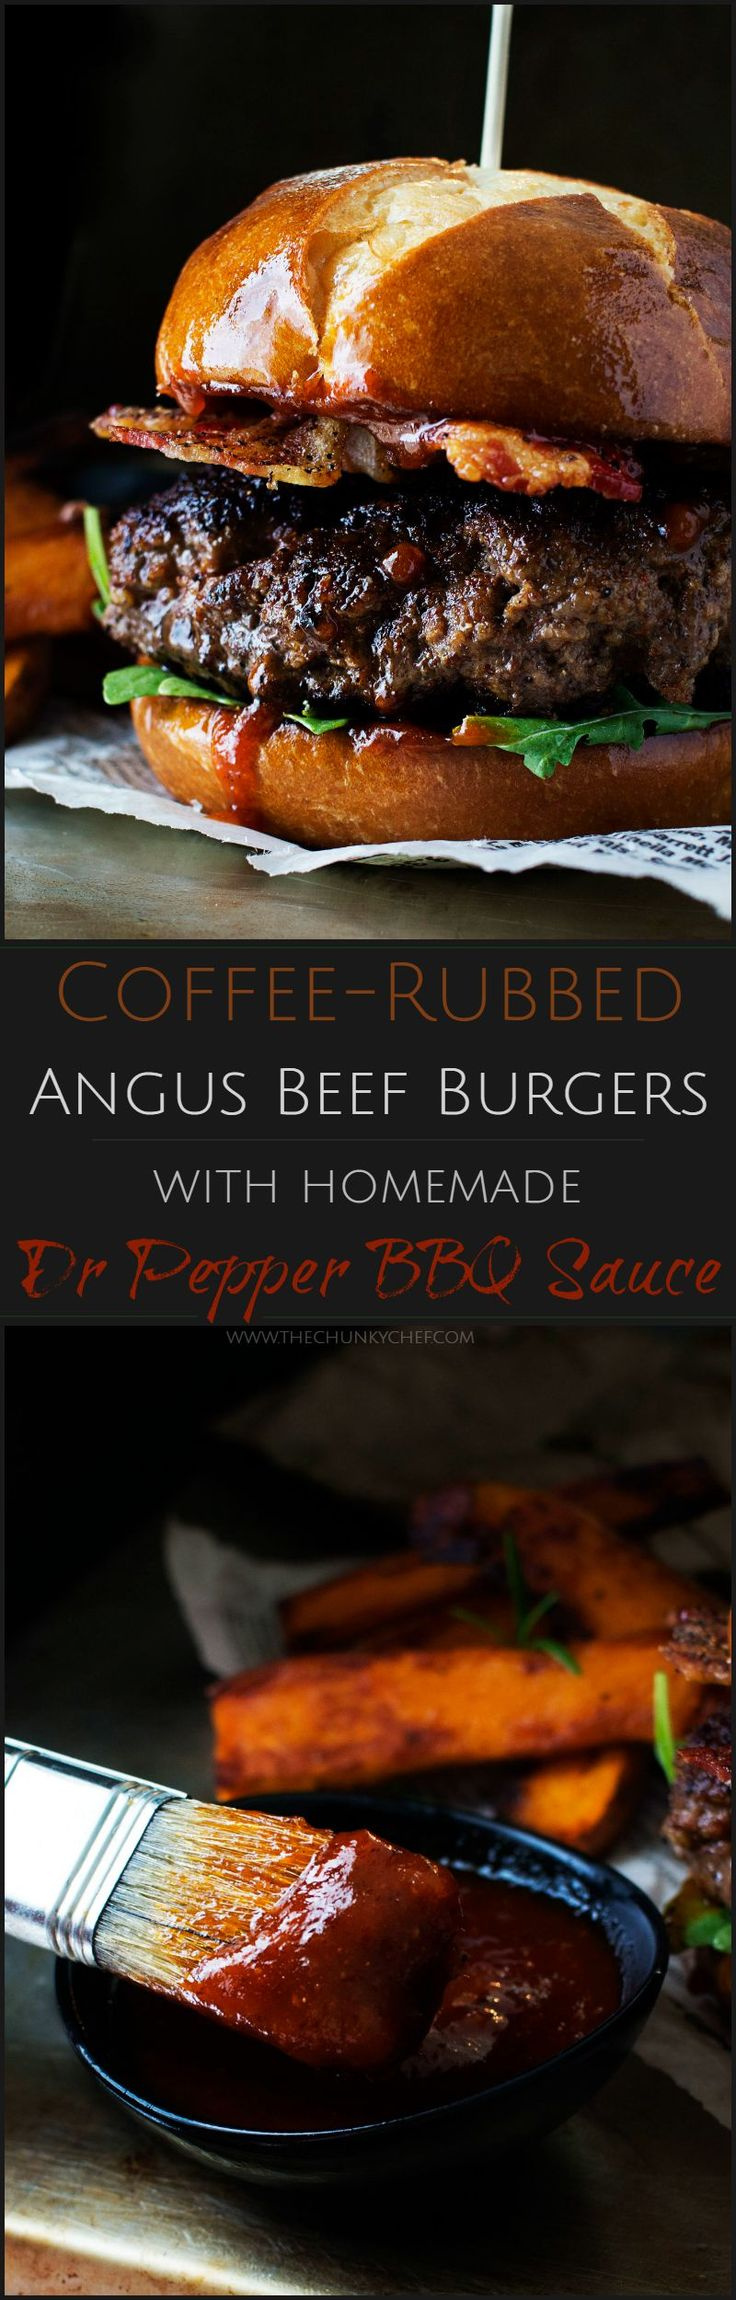 Coffee Rubbed Burgers with Dr Pepper BBQ Sauce OneOfAKindFan Ad  The Chunky Chef  Not your average burger! Juicy beef burgers seasoned with a spiced coffee rub topped with peppered bacon and a lip smacking Dr Pepper BBQ sauce!